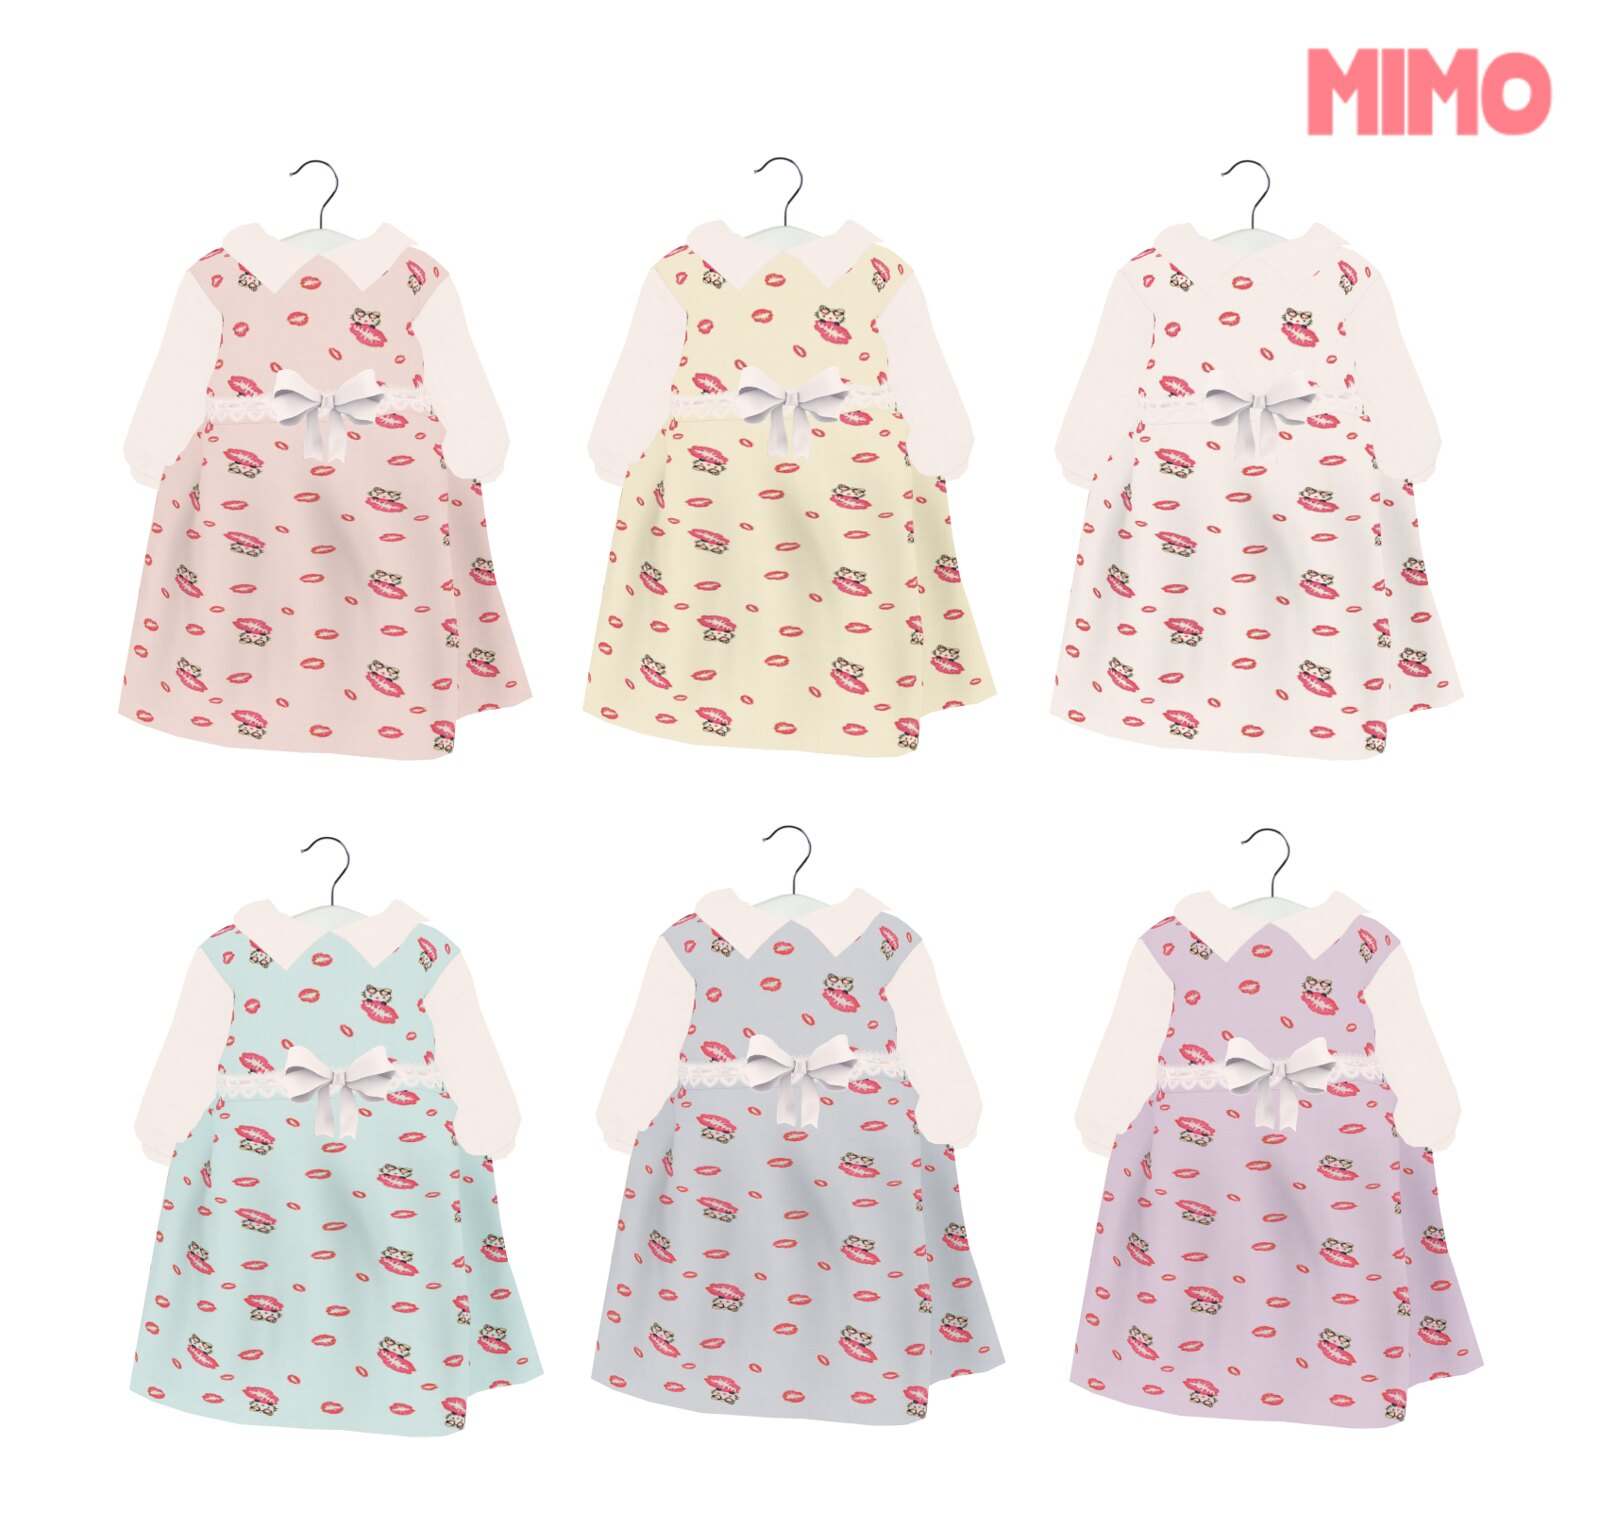 {Mimo} Cute Kiss Dress ToddleeDoo